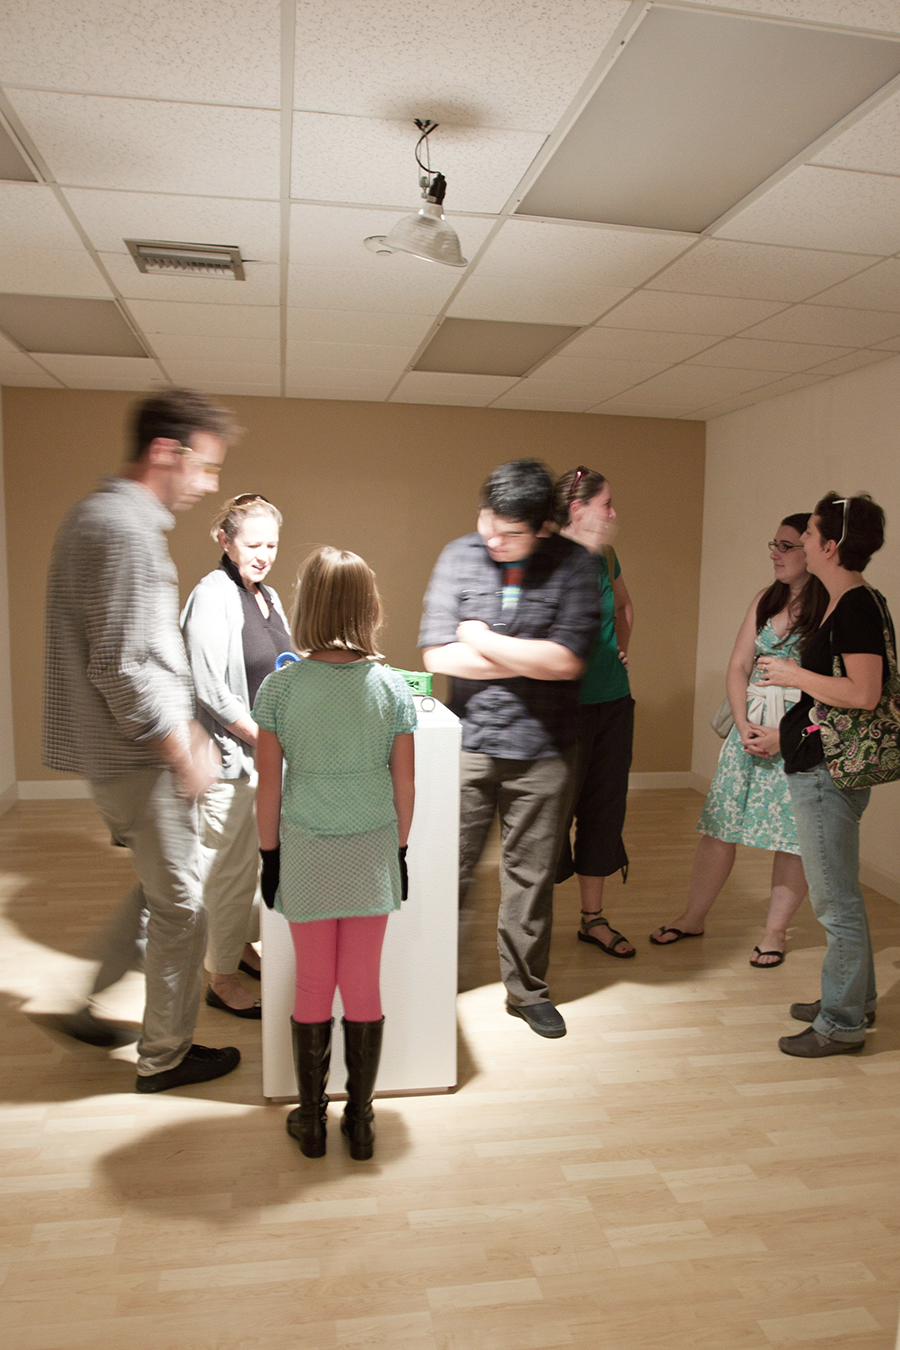 Adults and kids carefully observe one of the art works during the  s/ART/q Invitational Exhibition.   © Karen Arango